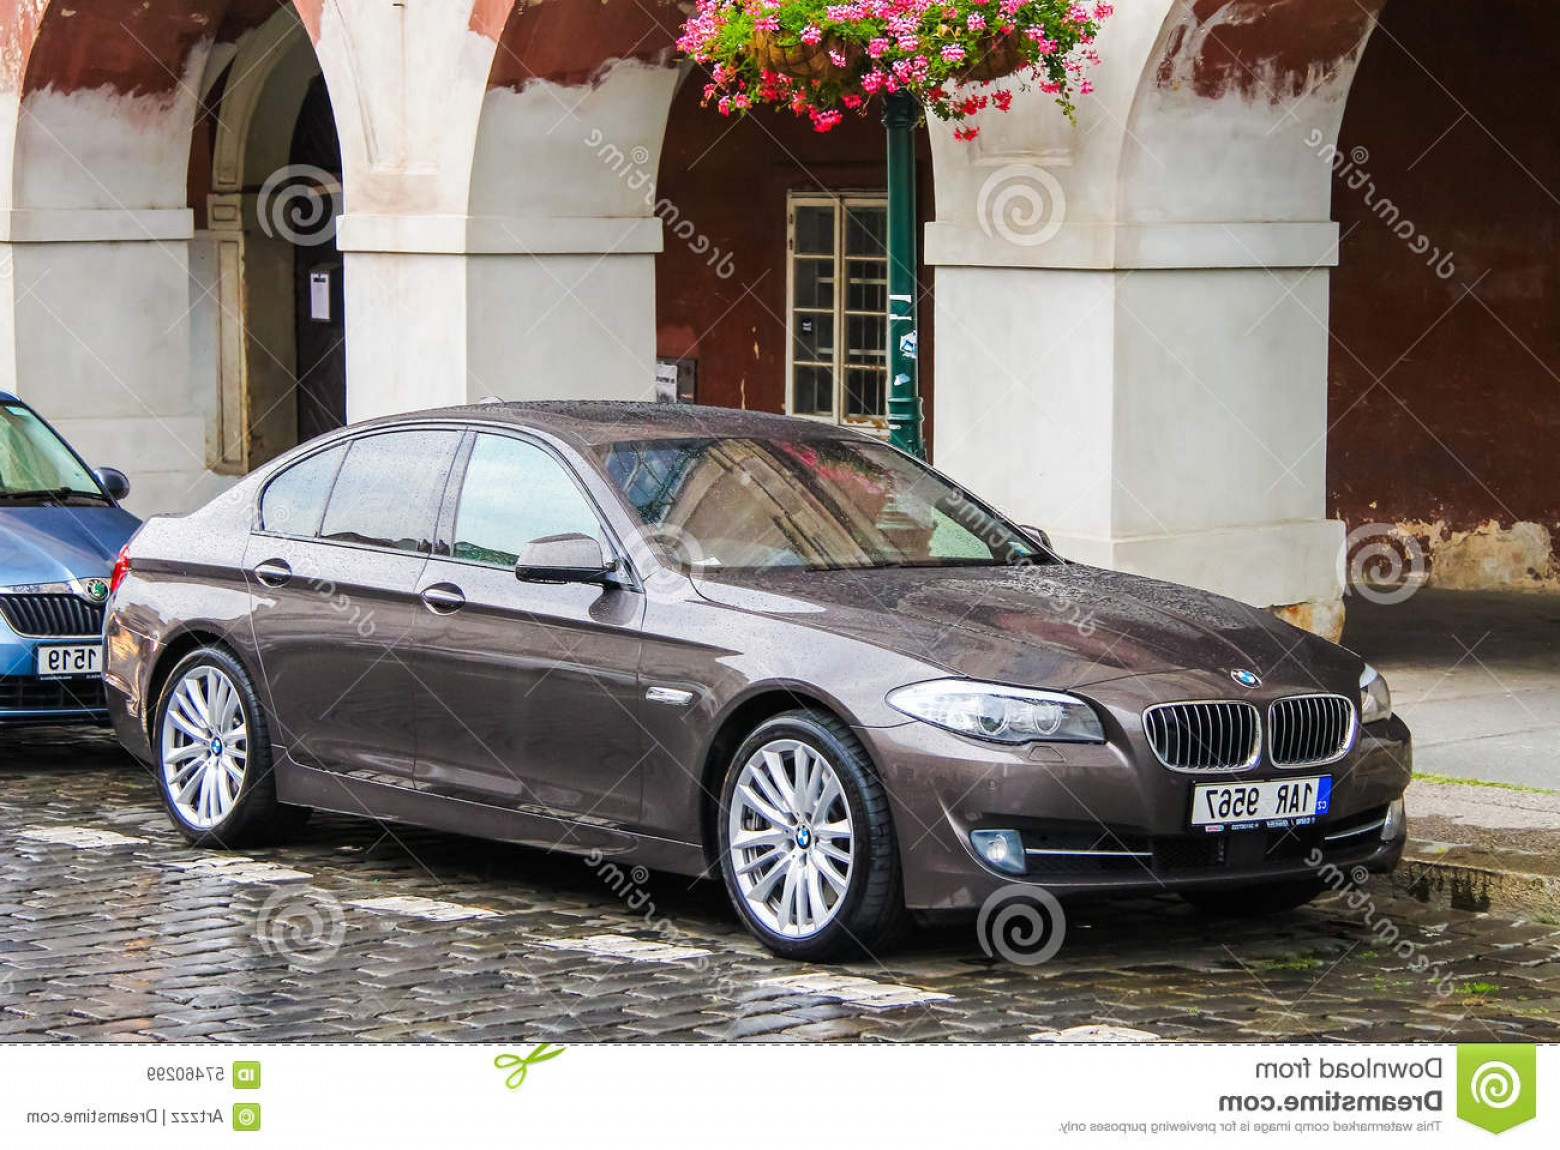 BMW F10 Vector Art: Editorial Stock Image Bmw F Series Prague Czech Republic July Motor Car City Street Image